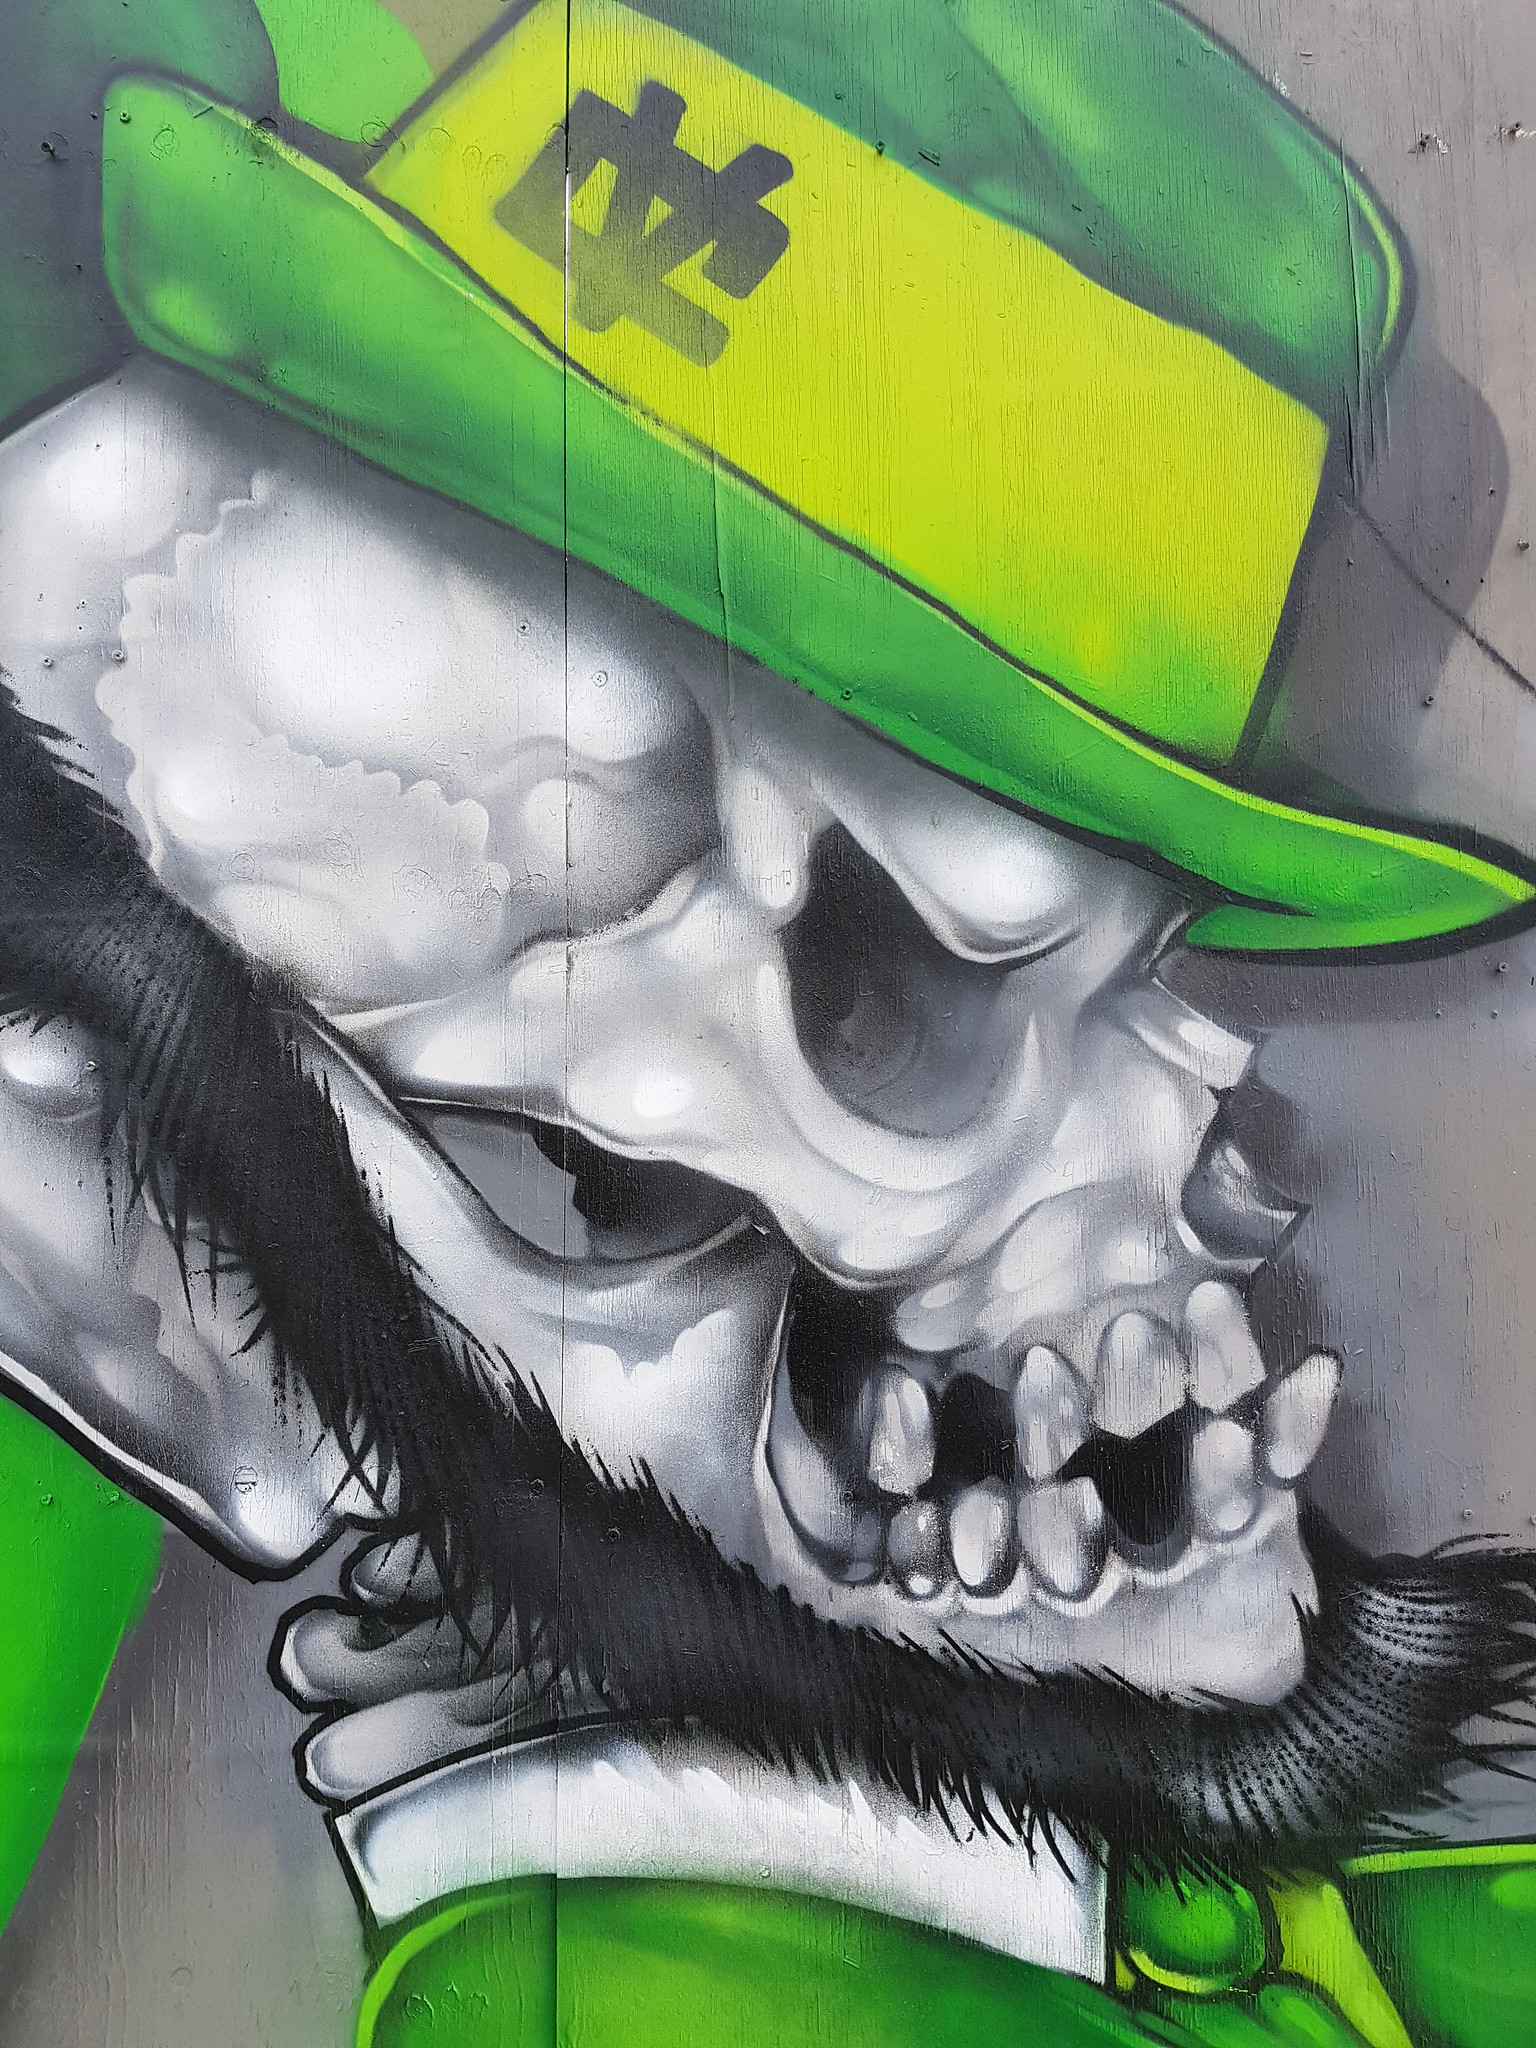 St Patricks Day street art, Cardiff